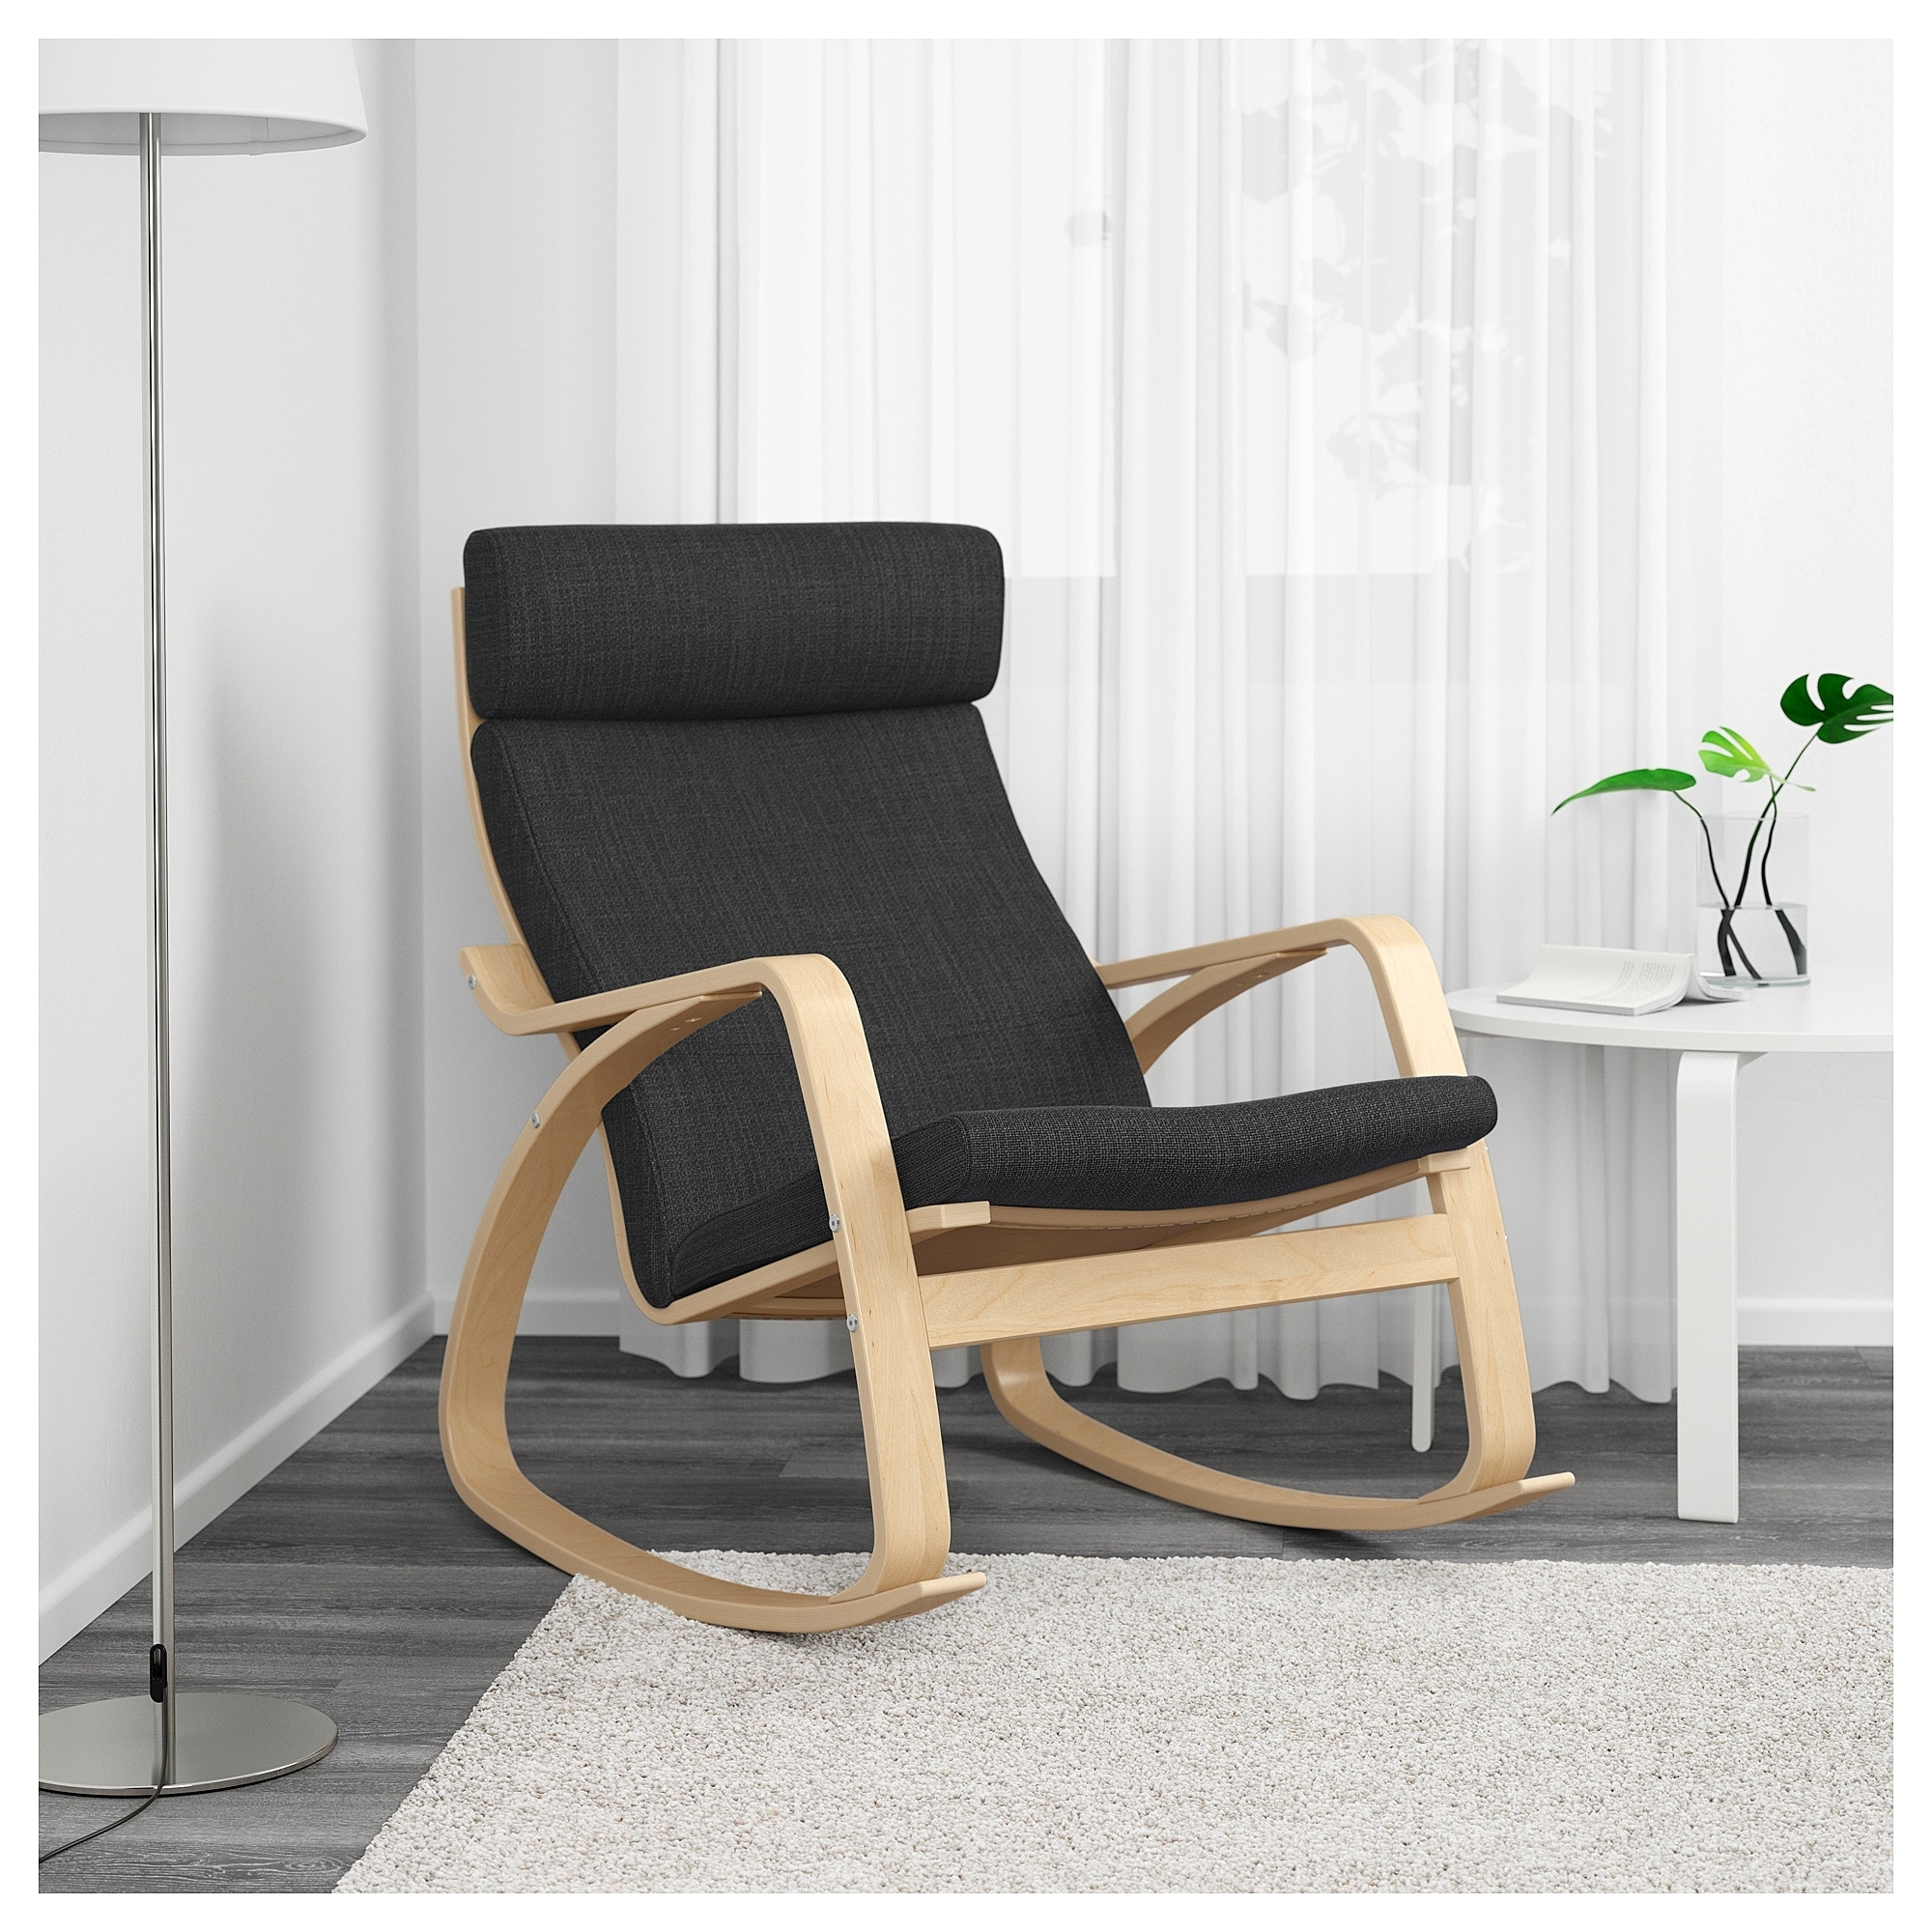 Ikea Rocking Chairs With Most Current Poäng Rocking Chair Birch Veneer/hillared Anthracite – Ikea (Gallery 6 of 15)